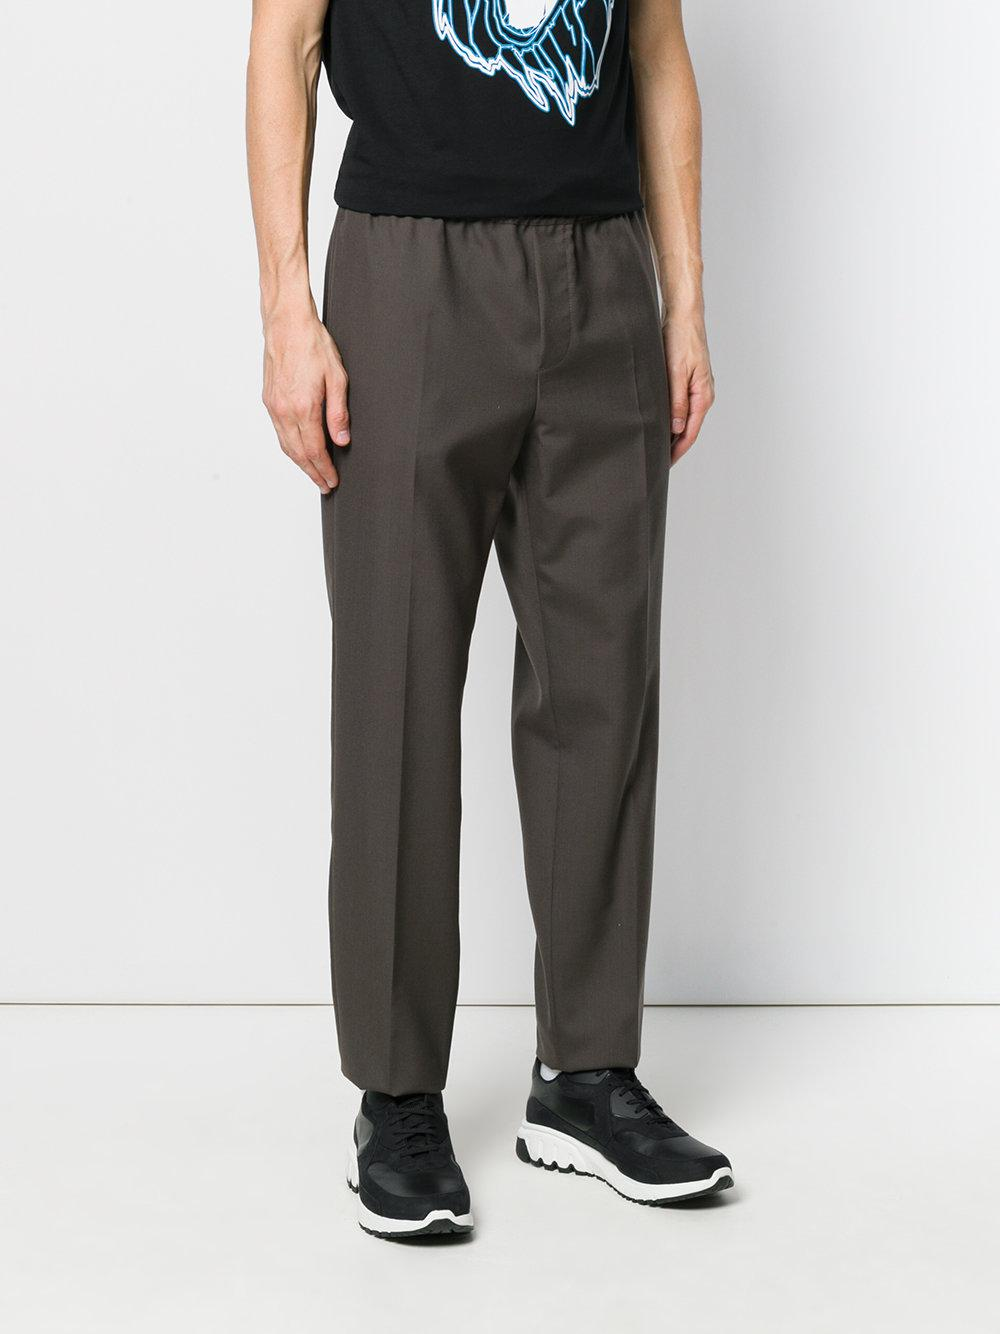 tailored track pants - Green Versus Lowest Price Y0IZ6